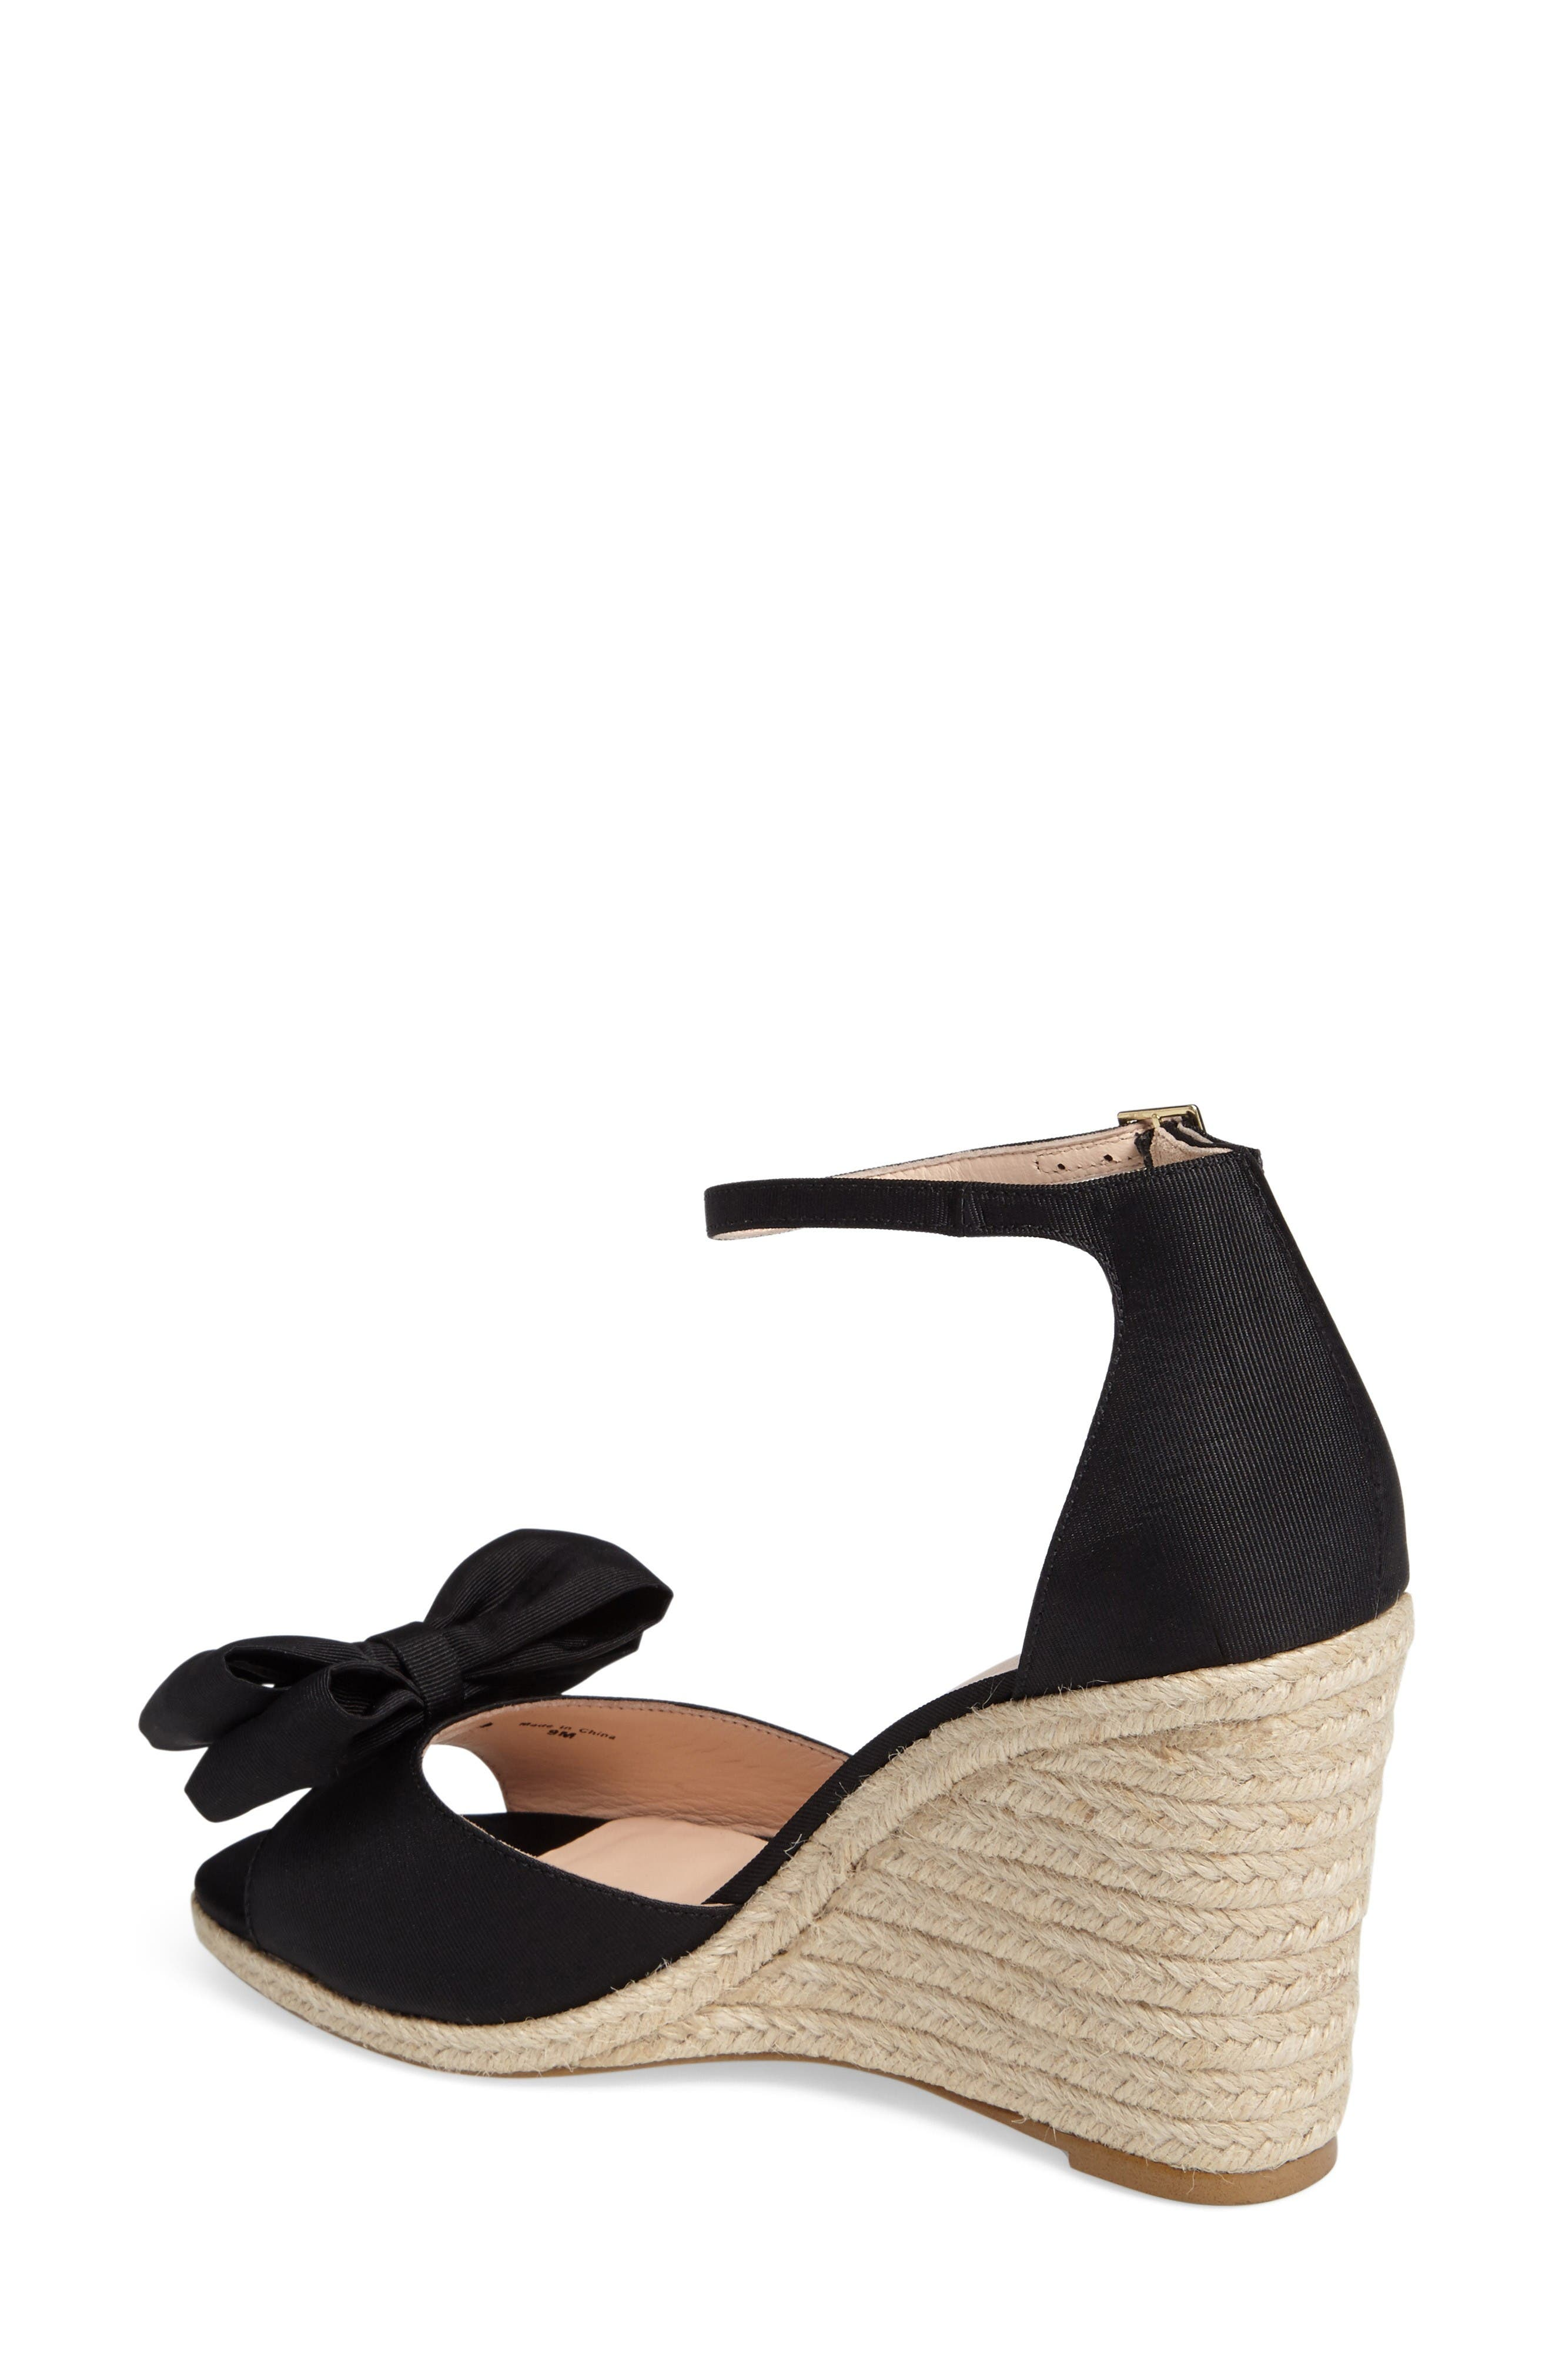 Alternate Image 2  - kate spade new york broome wedge sandal (Women)